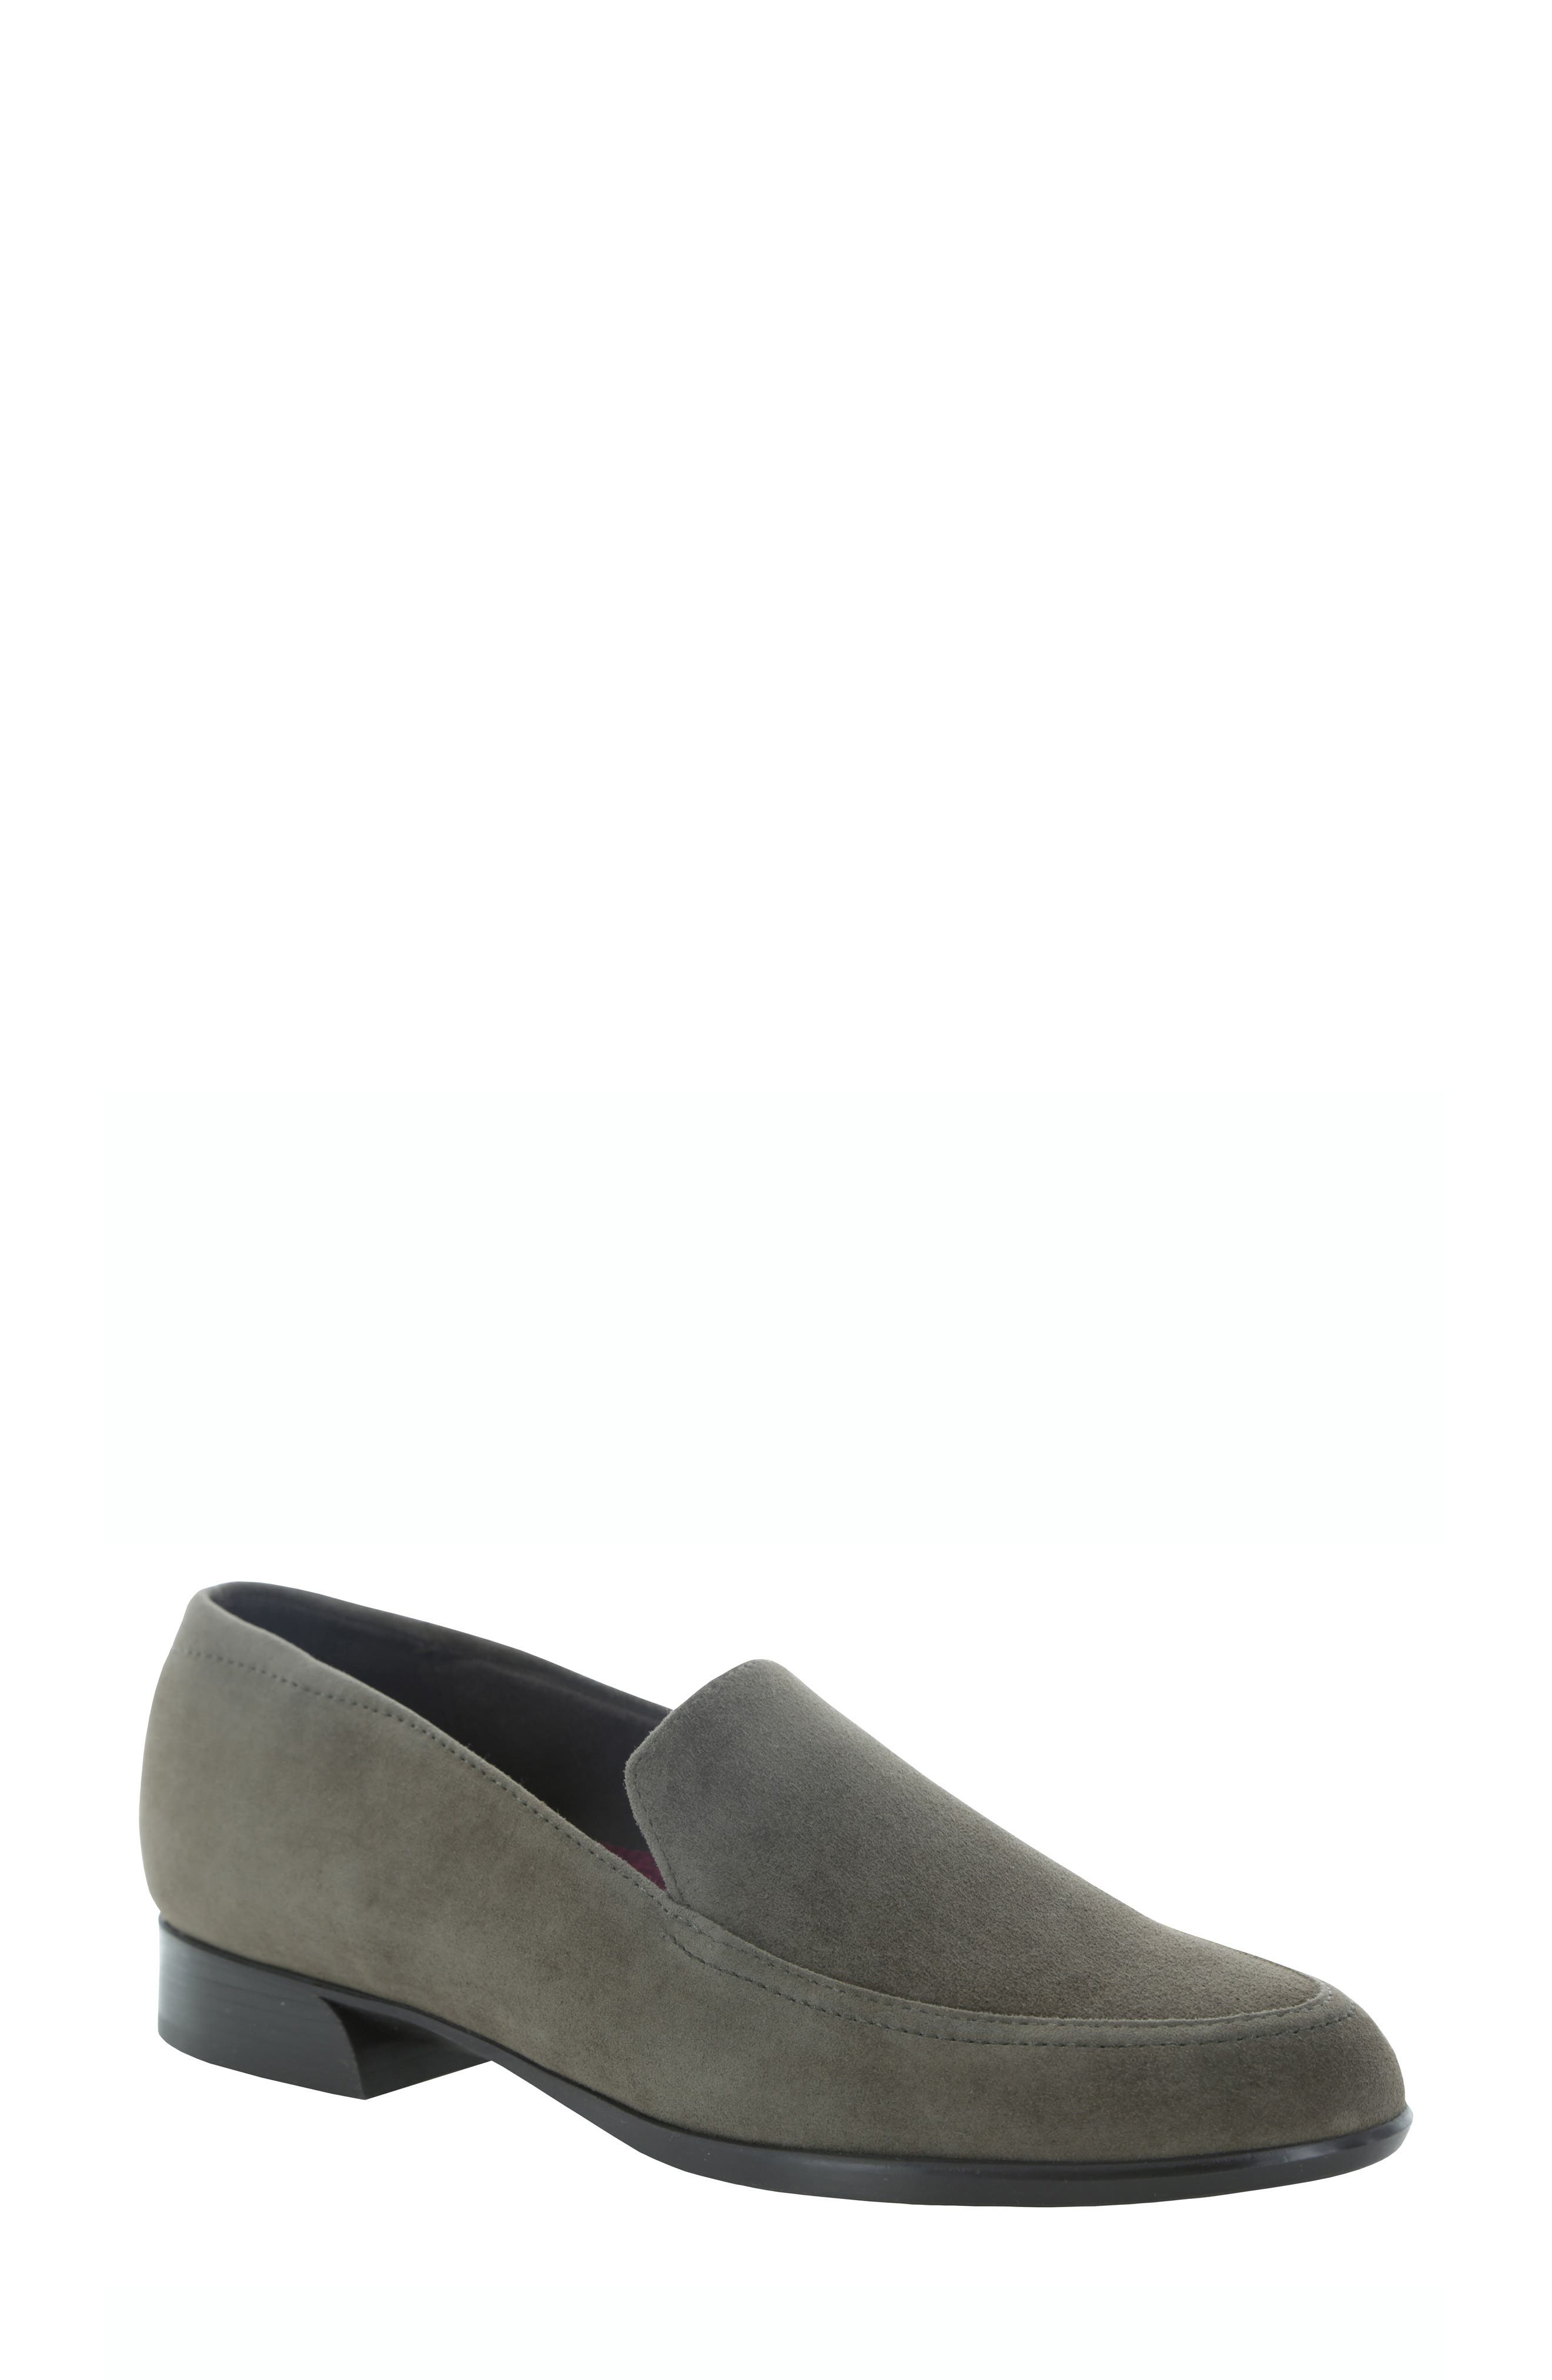 MUNRO Harrison Loafer in Seal Grey Suede